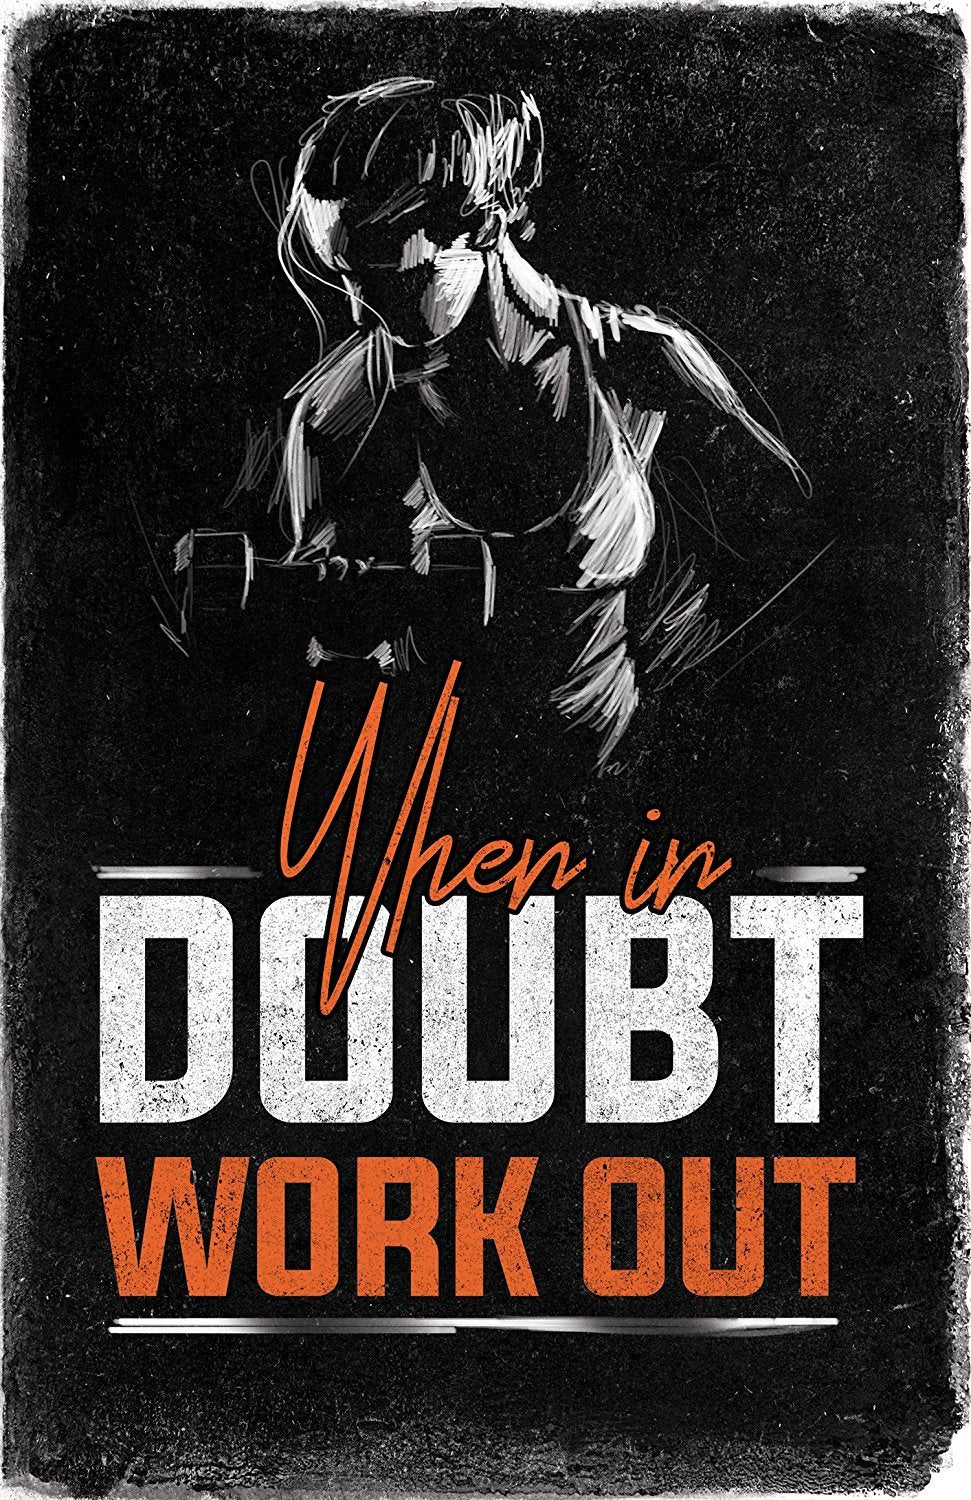 Gym Posters for Home Gym Decor, Motivational Posters for Gym, Workout Posters for Home Gym, Motivational Poster, Fitness Posters, Workout Room Decor, Inspirational Posters, Gym Wall Art, 4 Set 11x17""